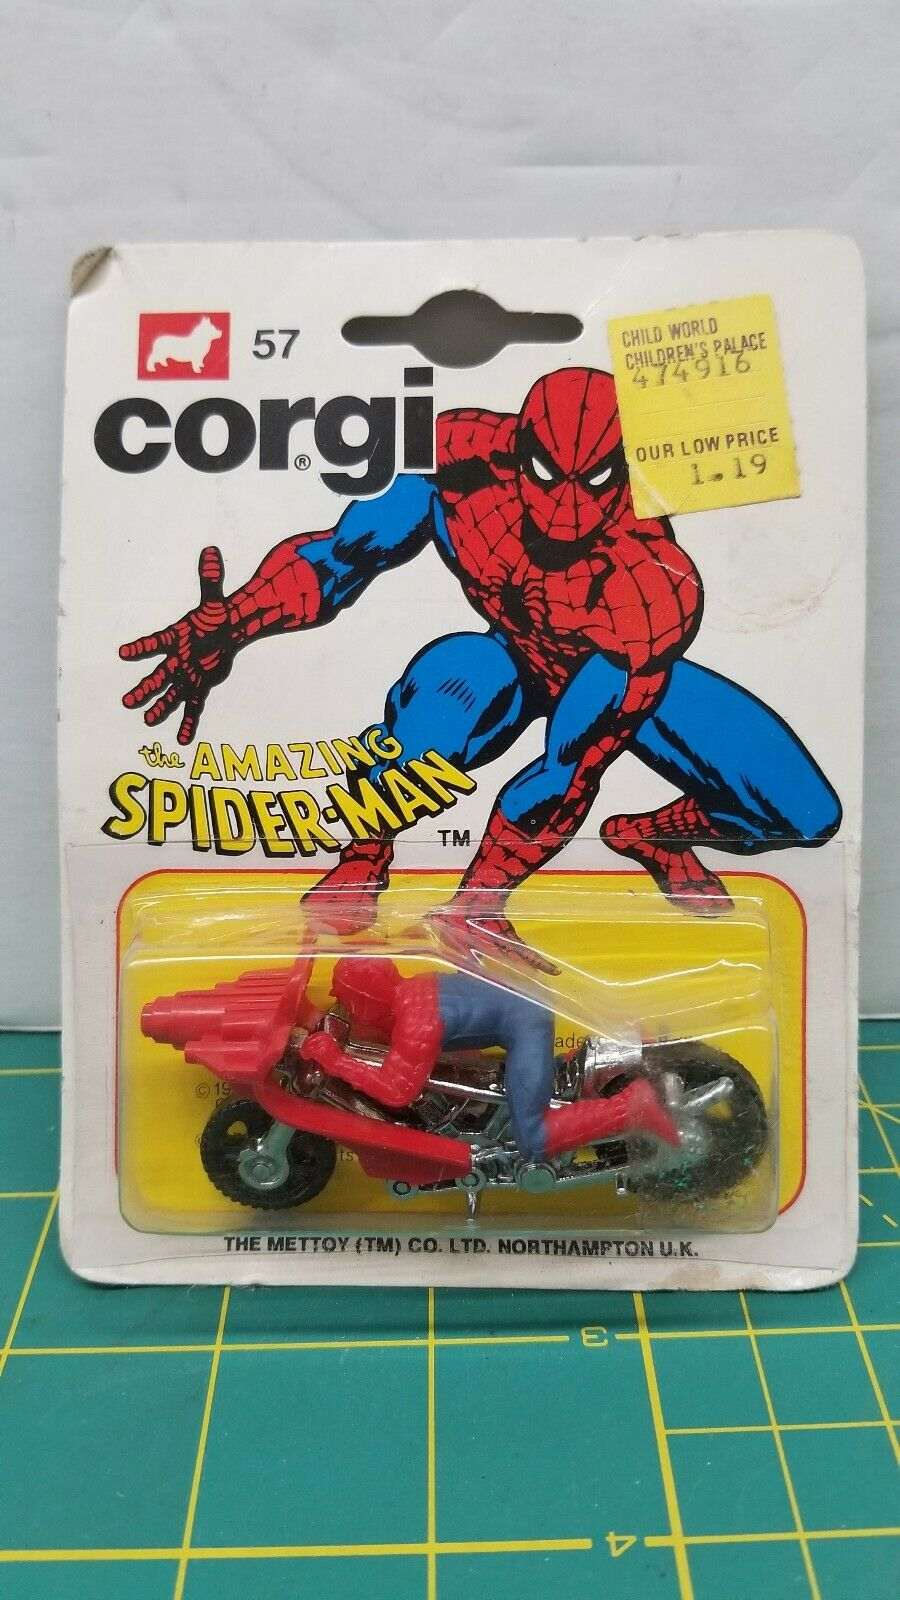 CORGI JR The Amazing Spider-Man vélo moto  No.57 Die-cast métal Angleterre  bénéfice nul